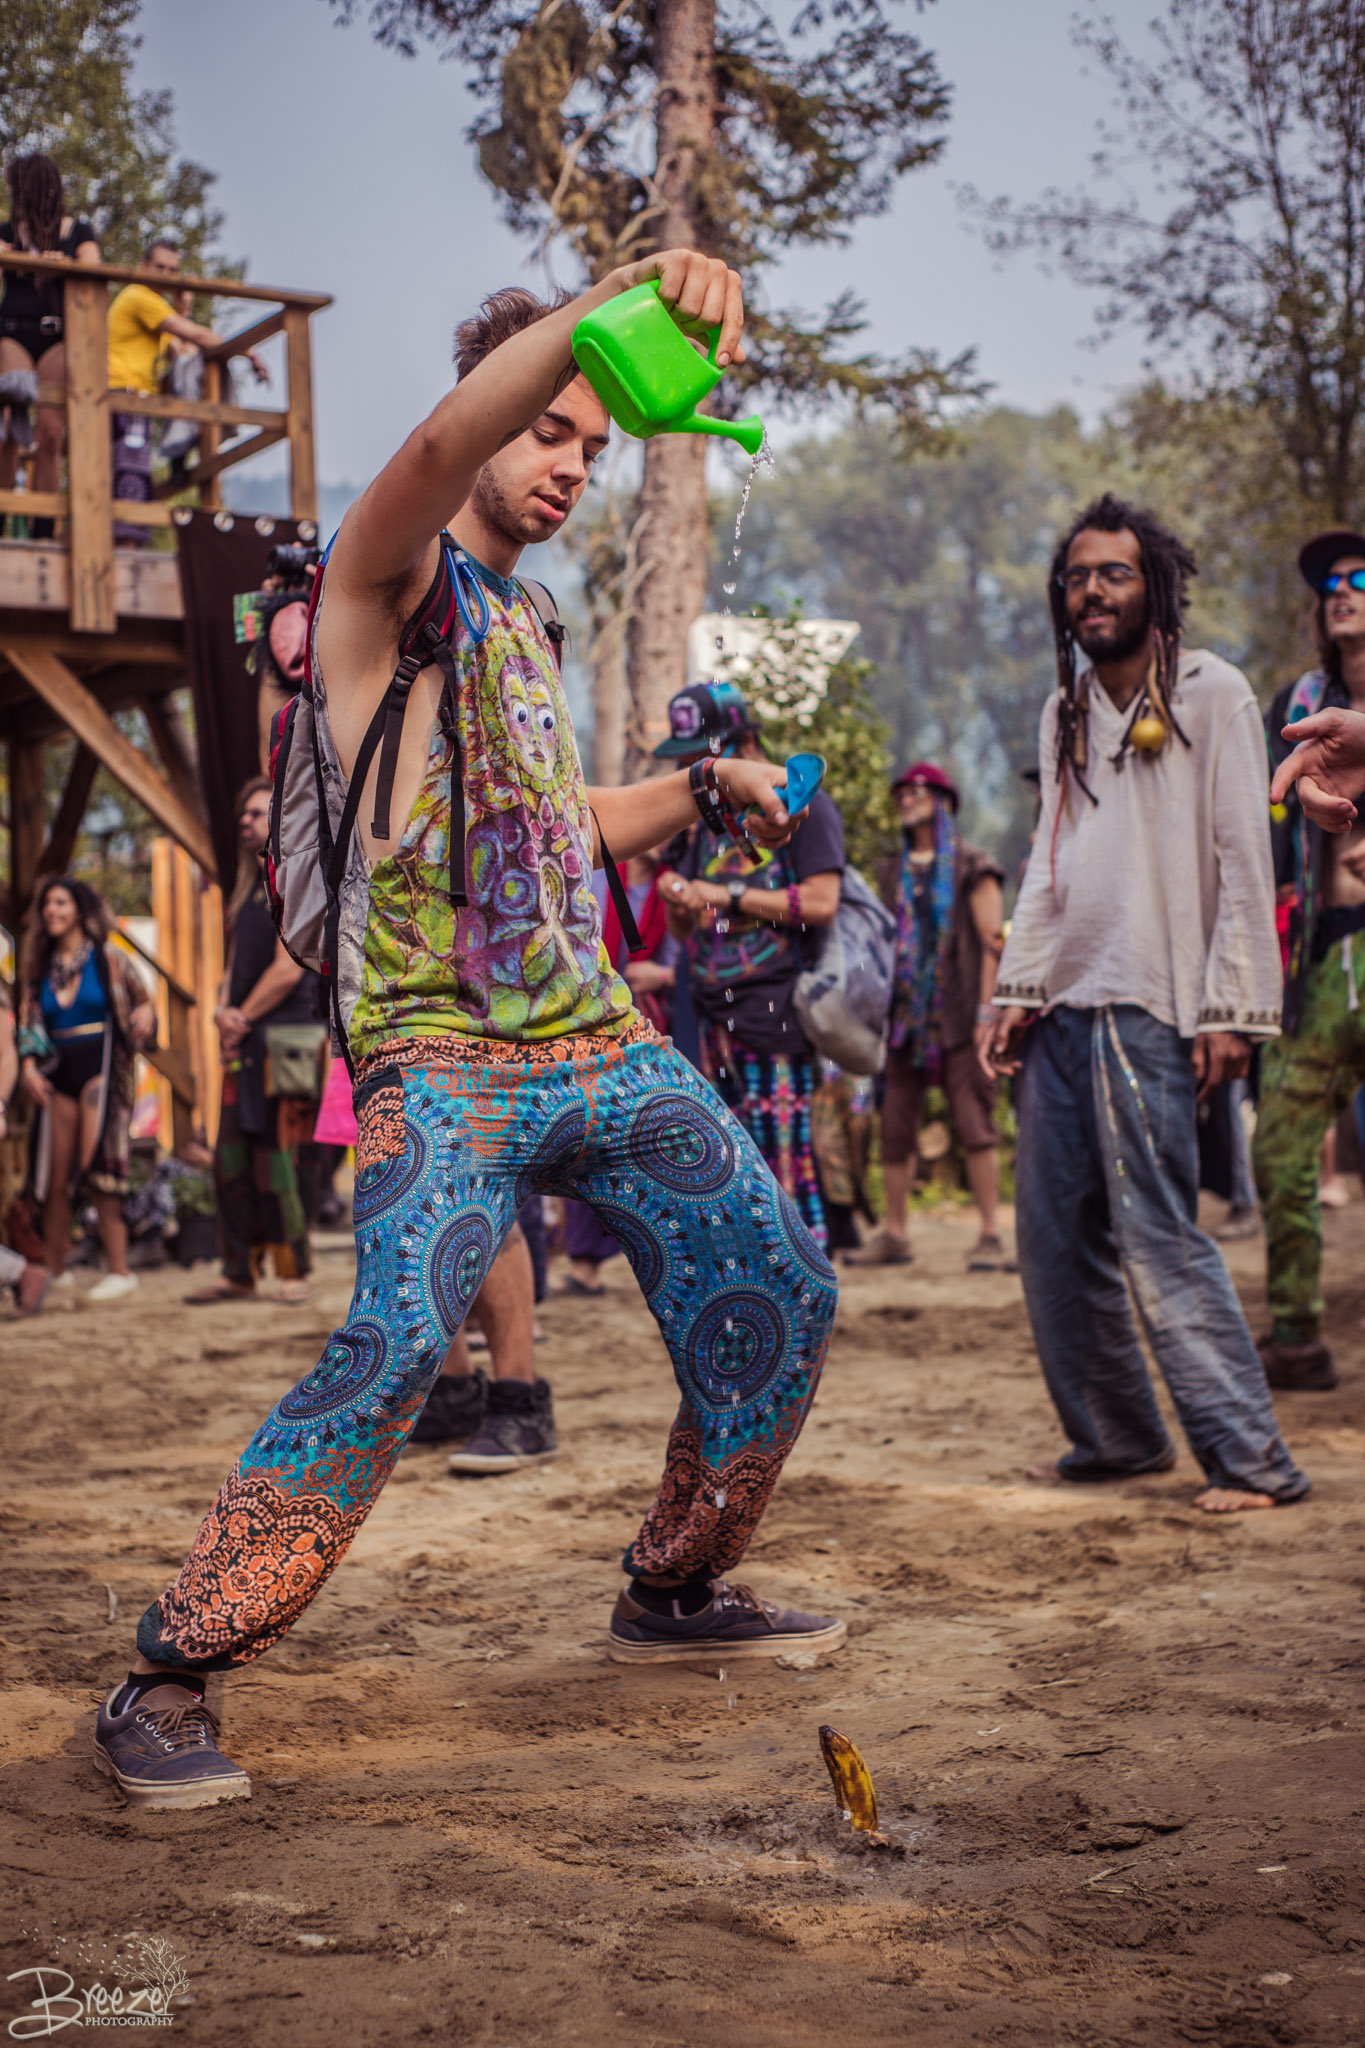 Brie'Ana Breeze Photography & Media - Shambhala 2018-1767.jpg